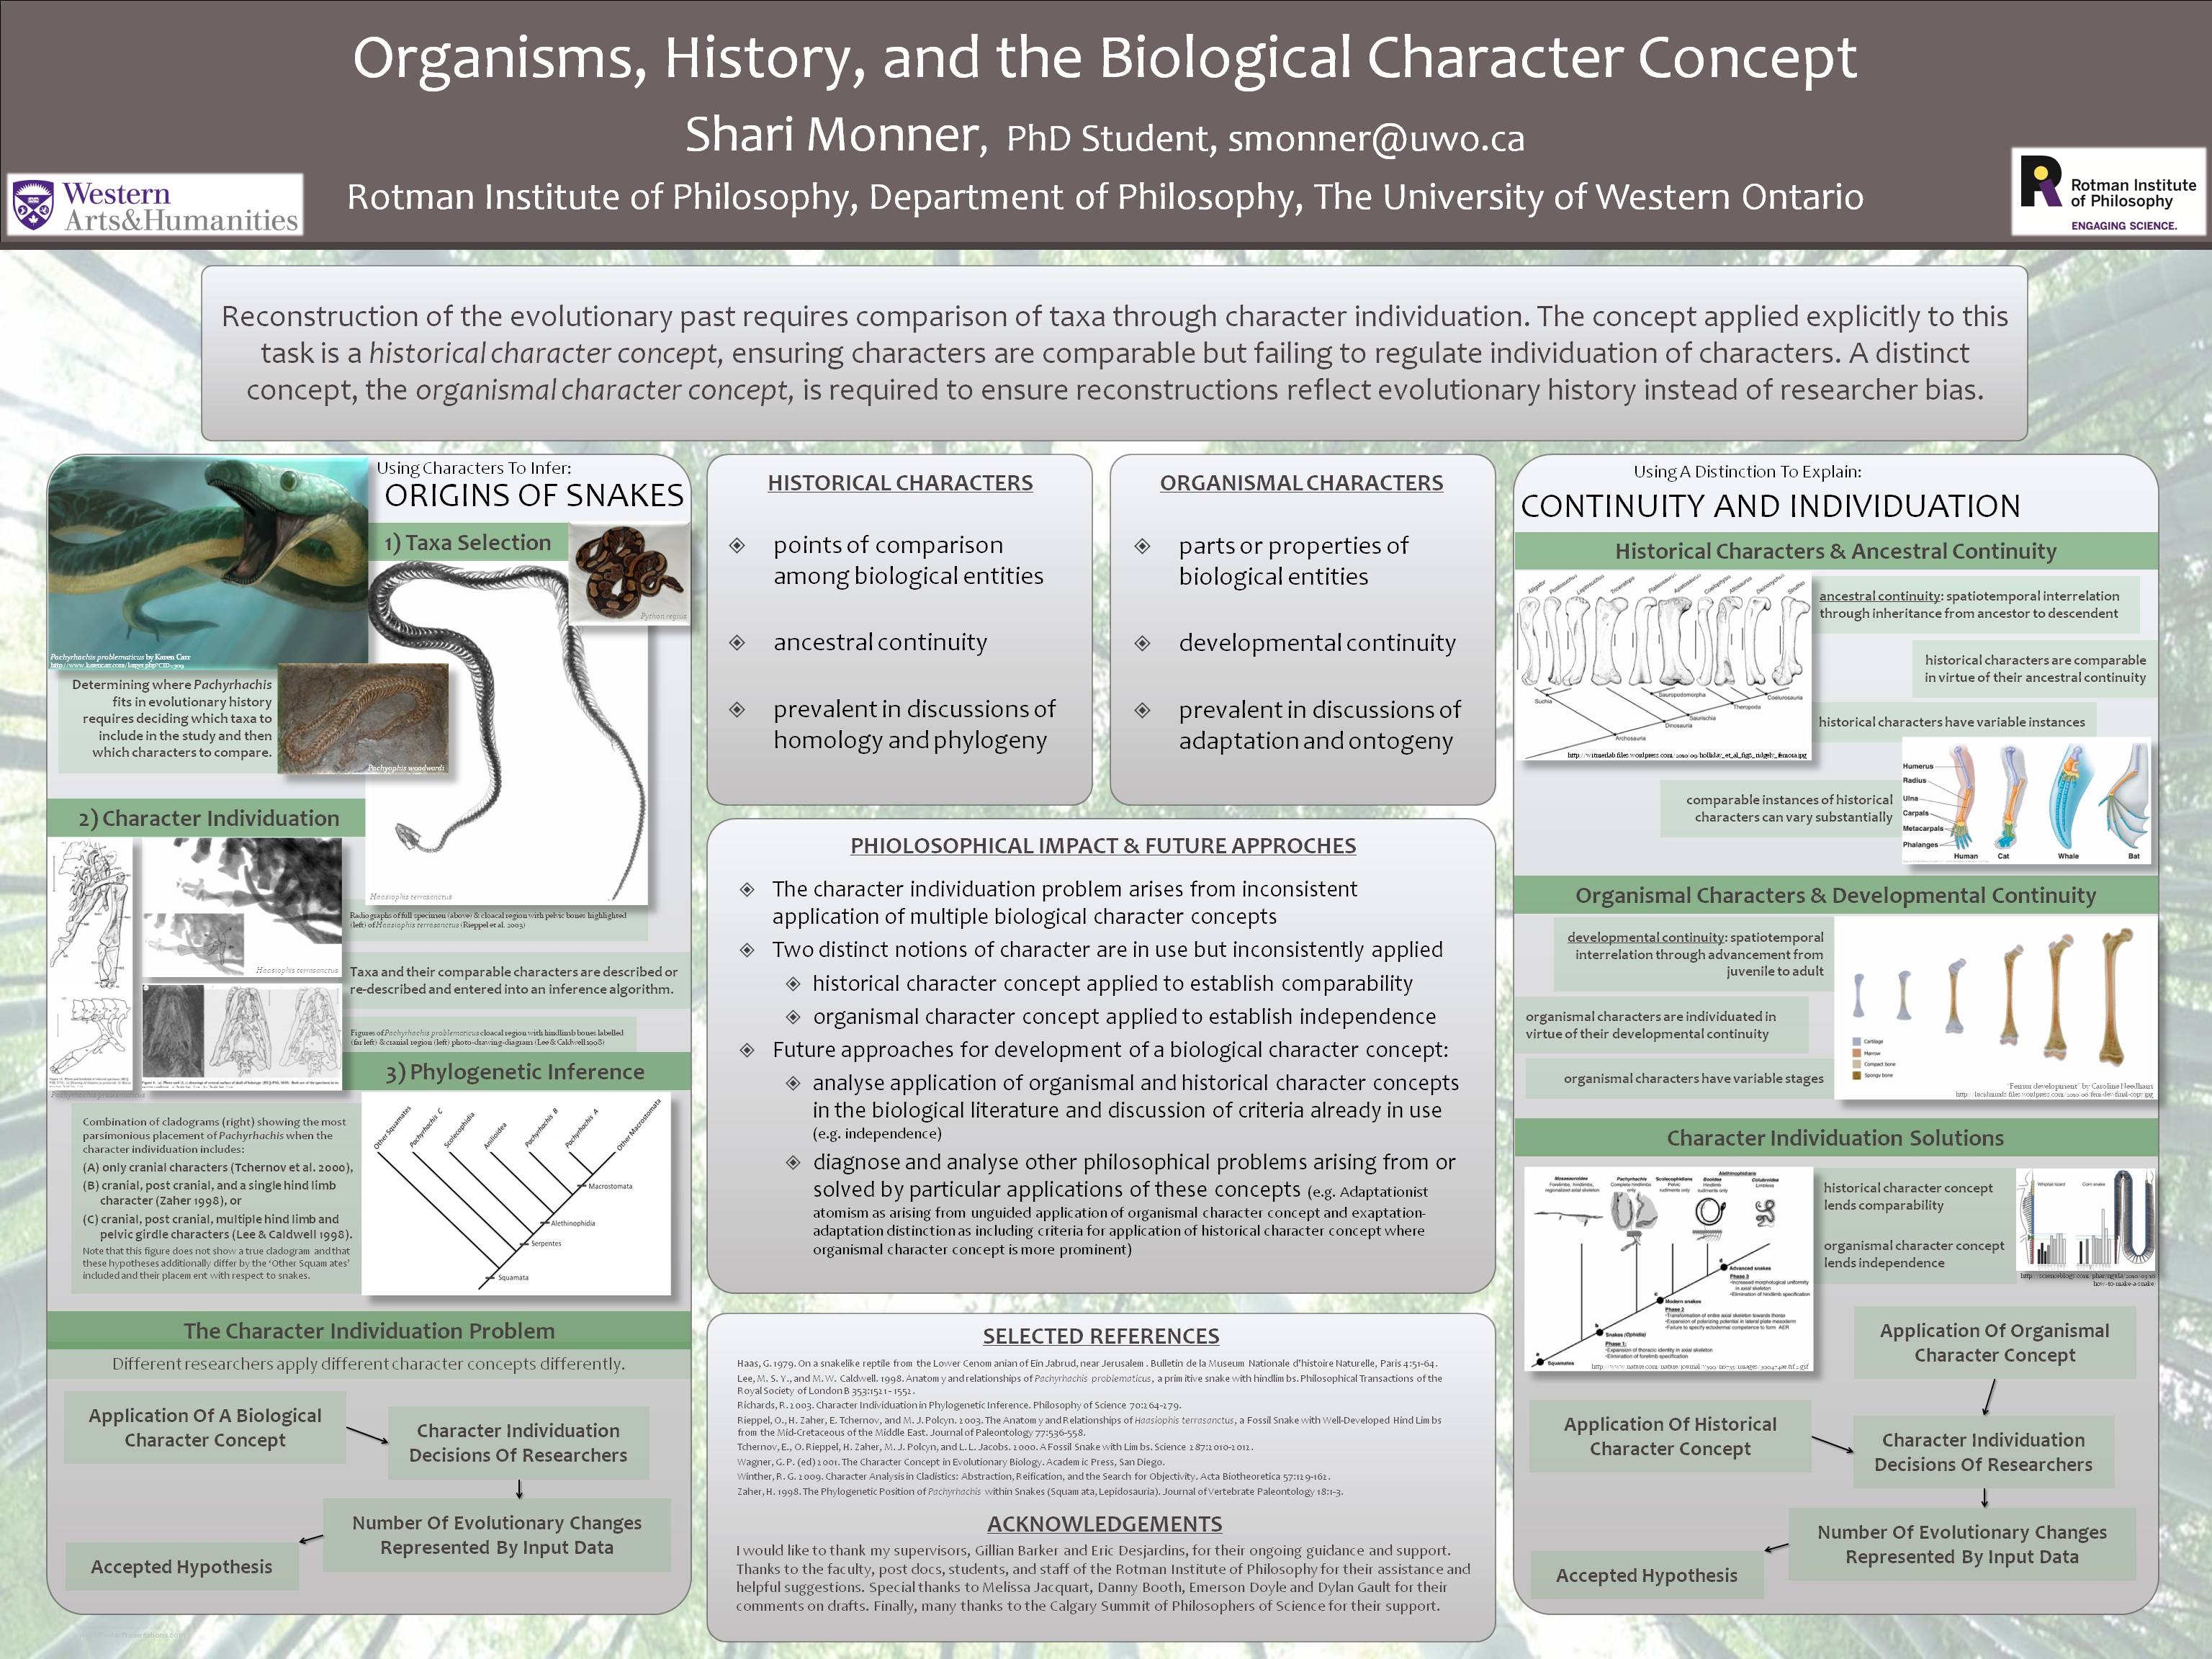 Research Poster about Organisms, History, and the Biological Character Concept by Shari Monner from the Rotman Institute of Philosophy at Western University.